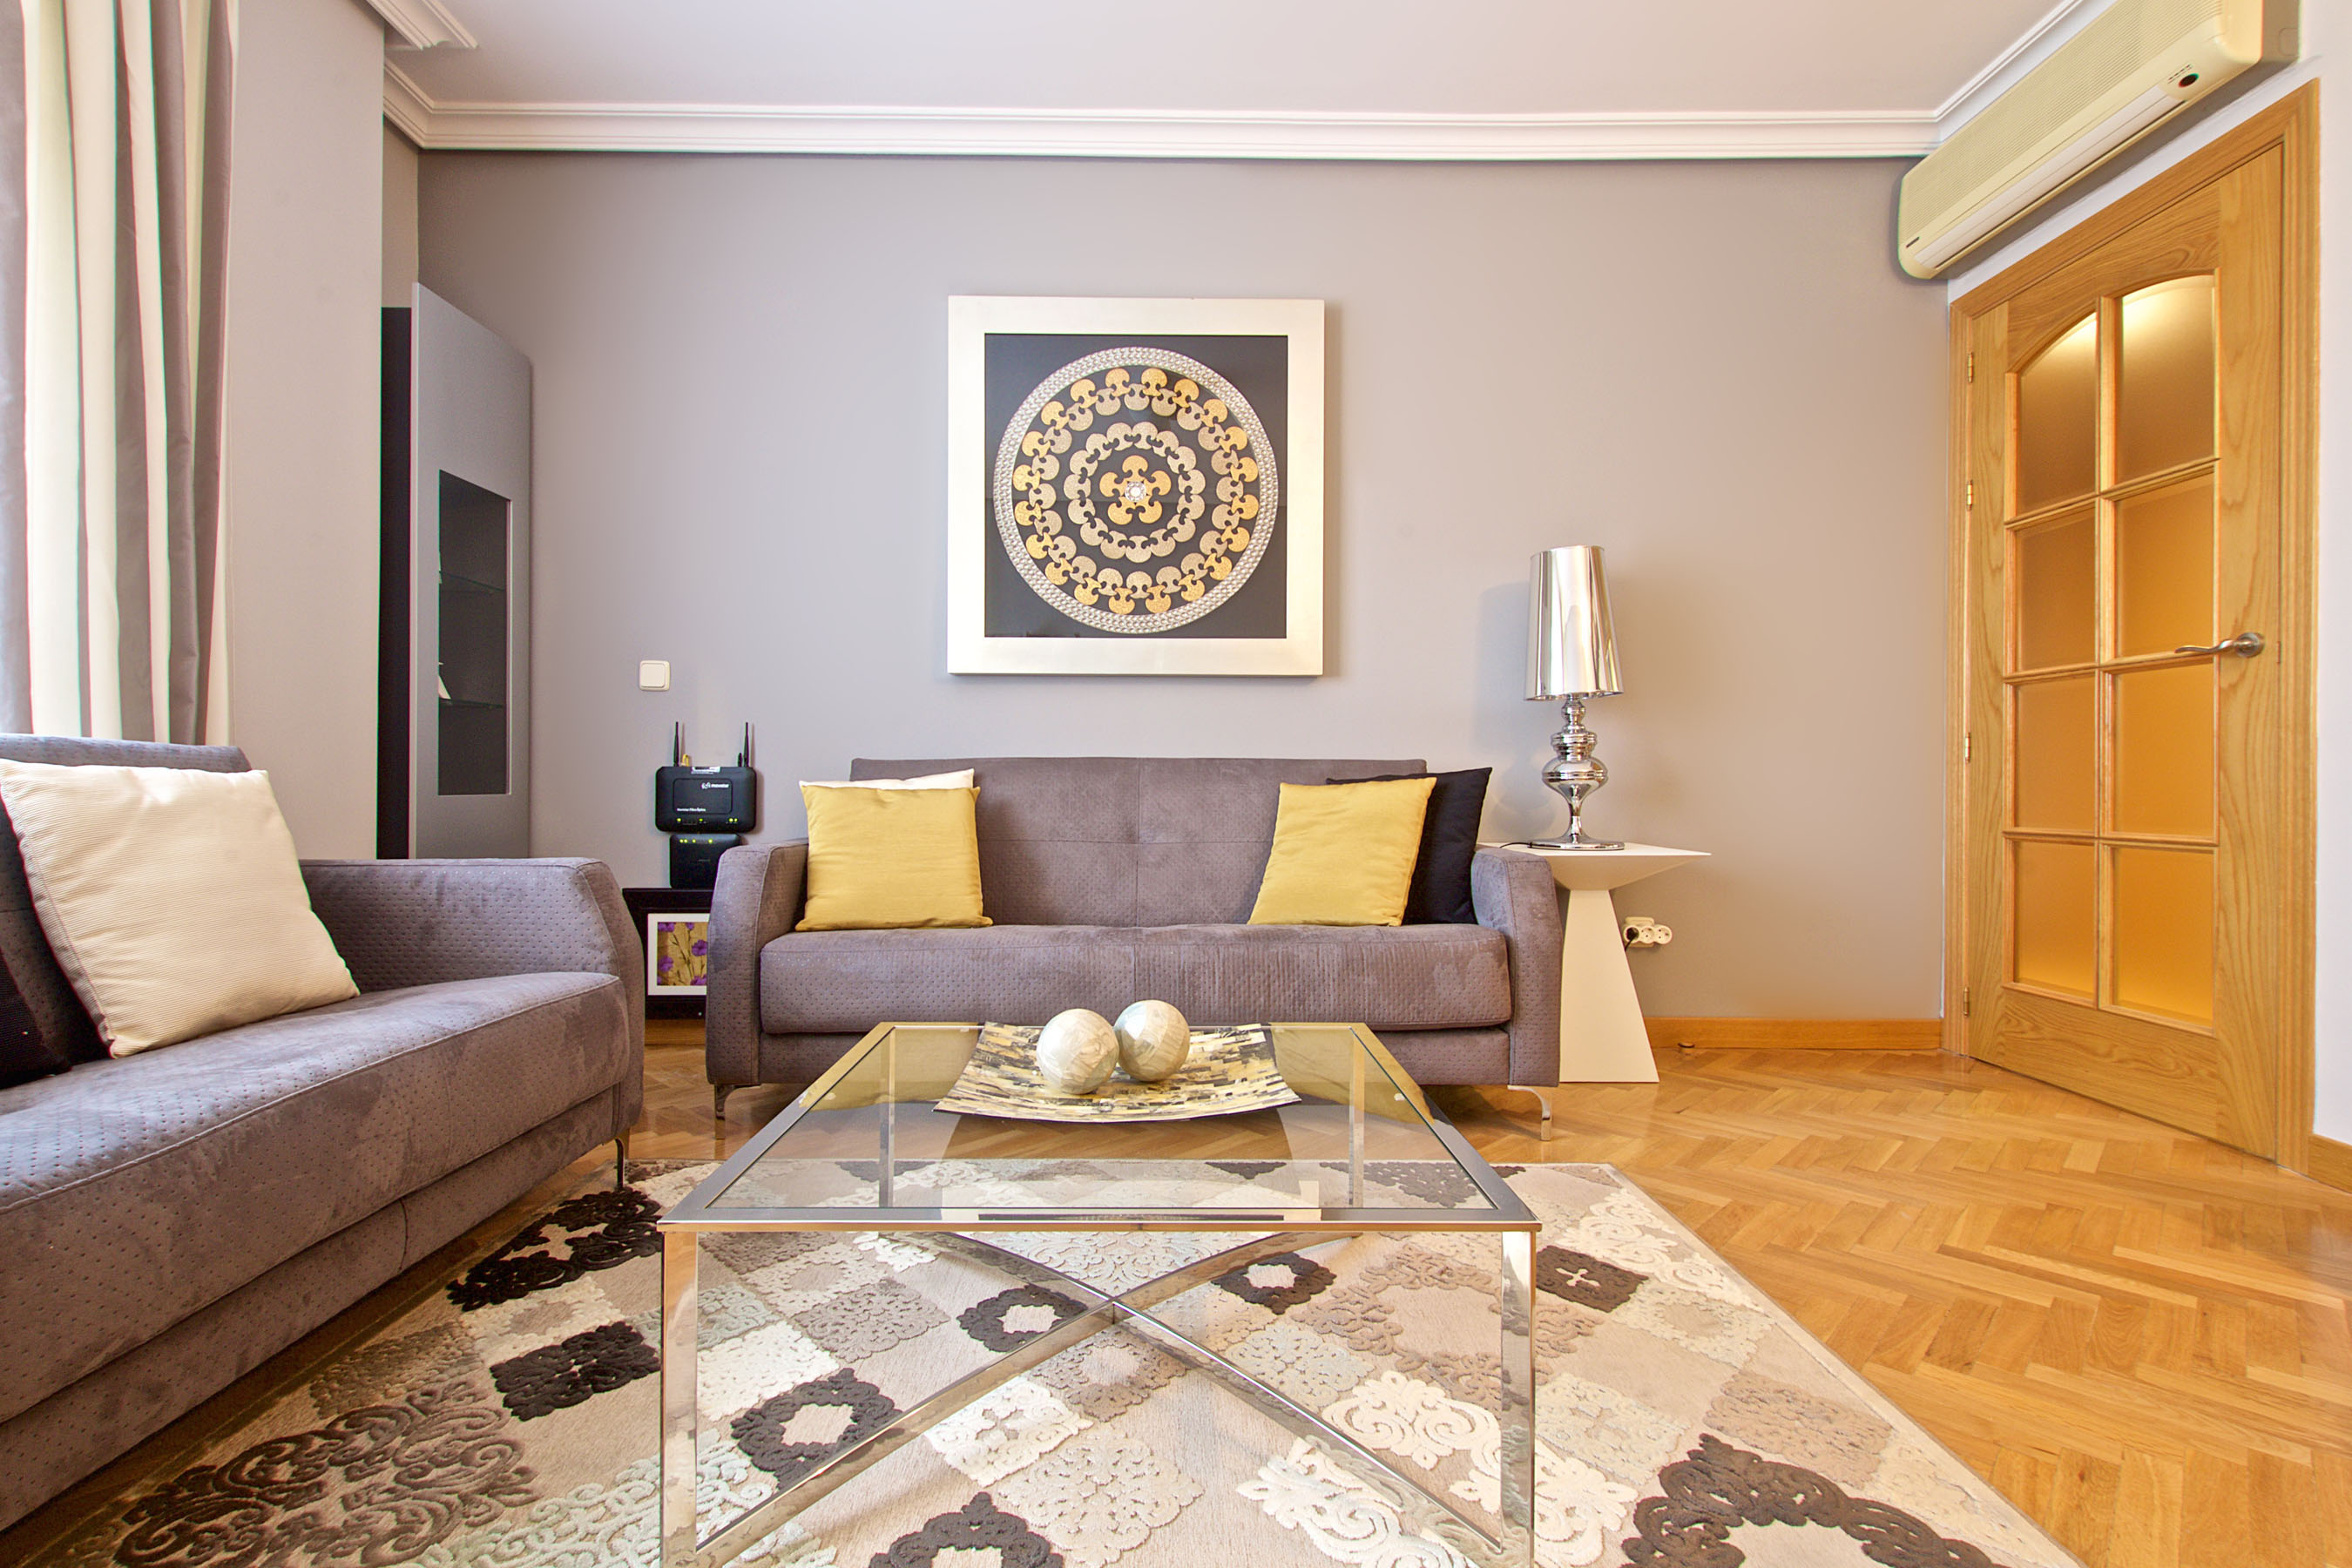 latina nature apartment madrid living dining room 6 El Museo Nacional del Prado   the Royal Museum